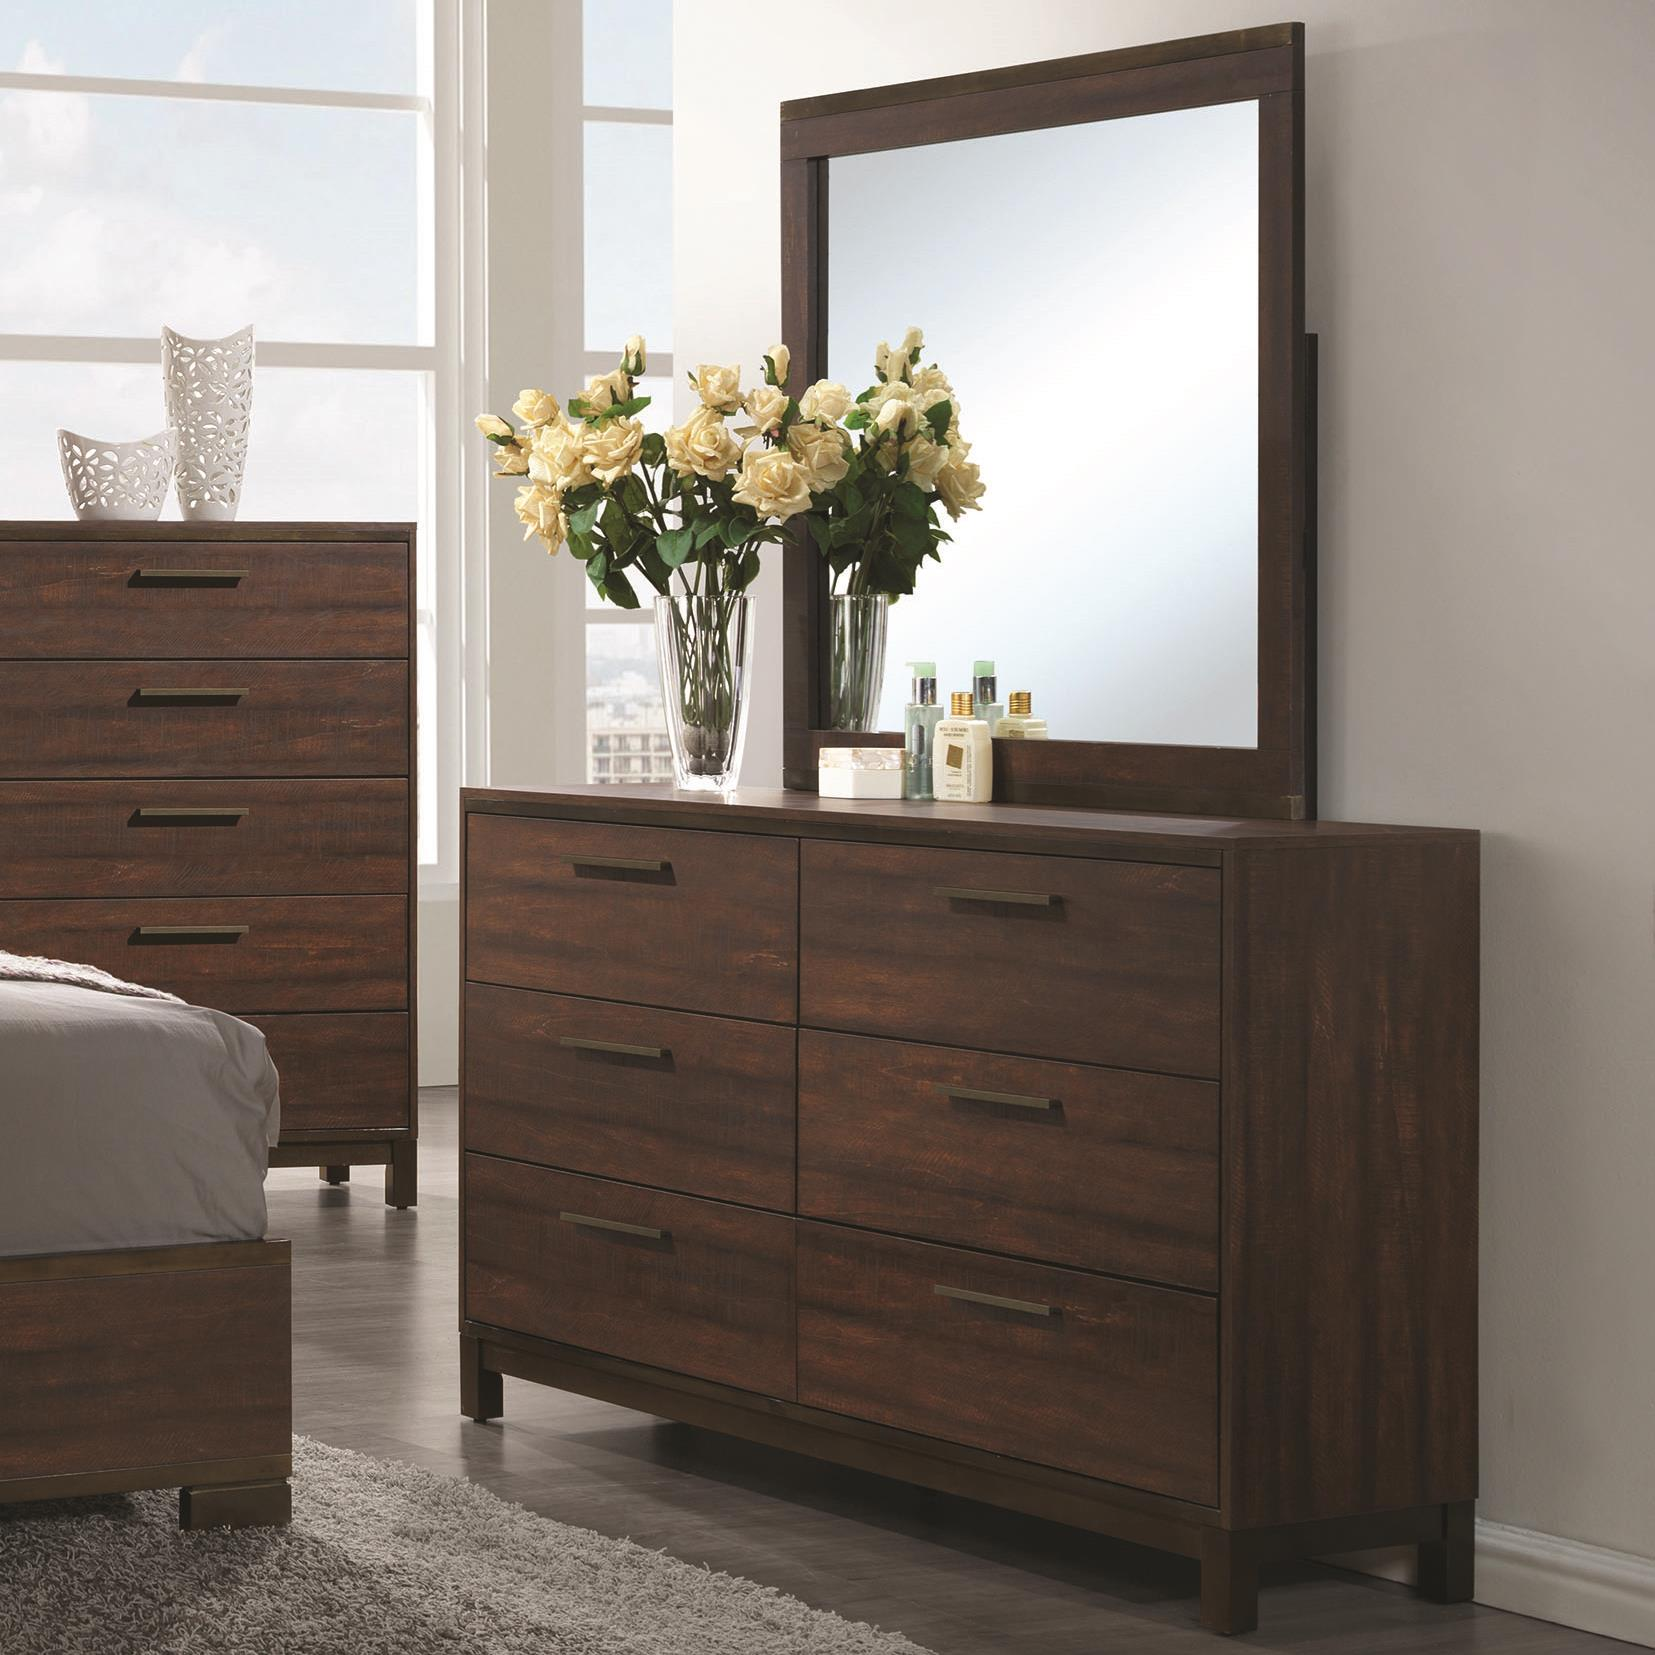 Edmonton Dresser and Mirror by Coaster at Value City Furniture